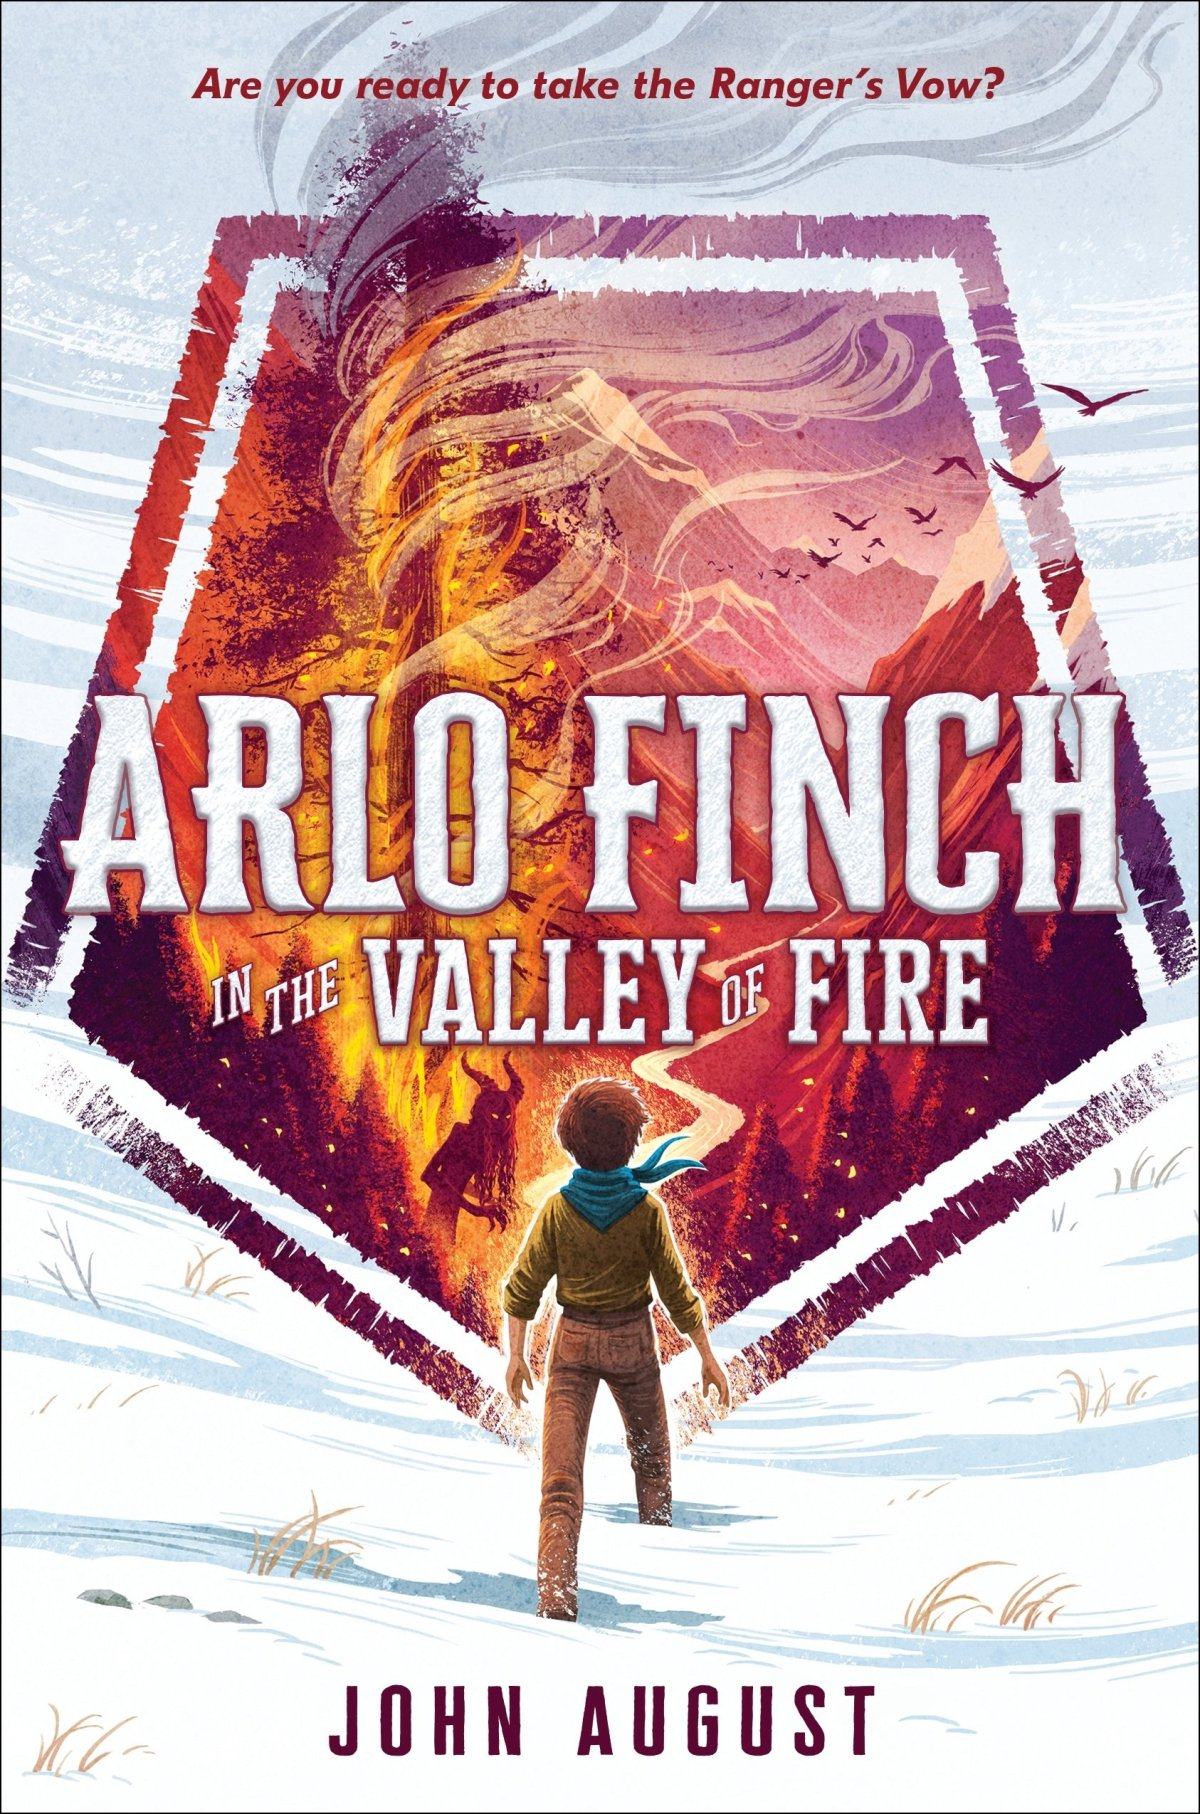 arlo finch cover image